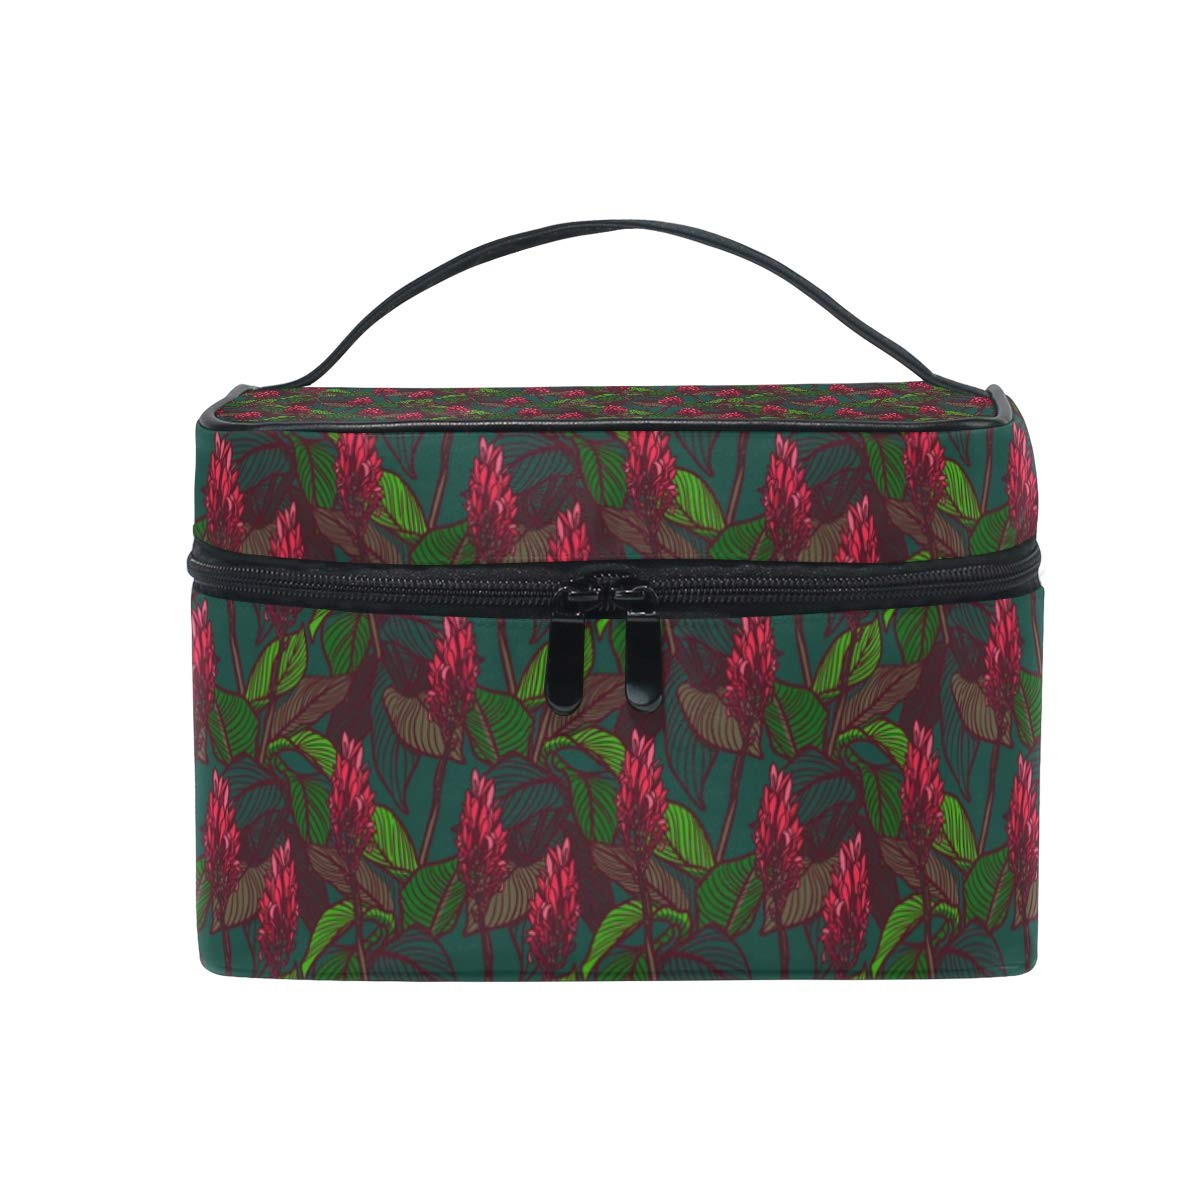 b916f9895976 Amazon.com : Cosmetic Bag Colorful Stylized FloralTravel Makeup ...